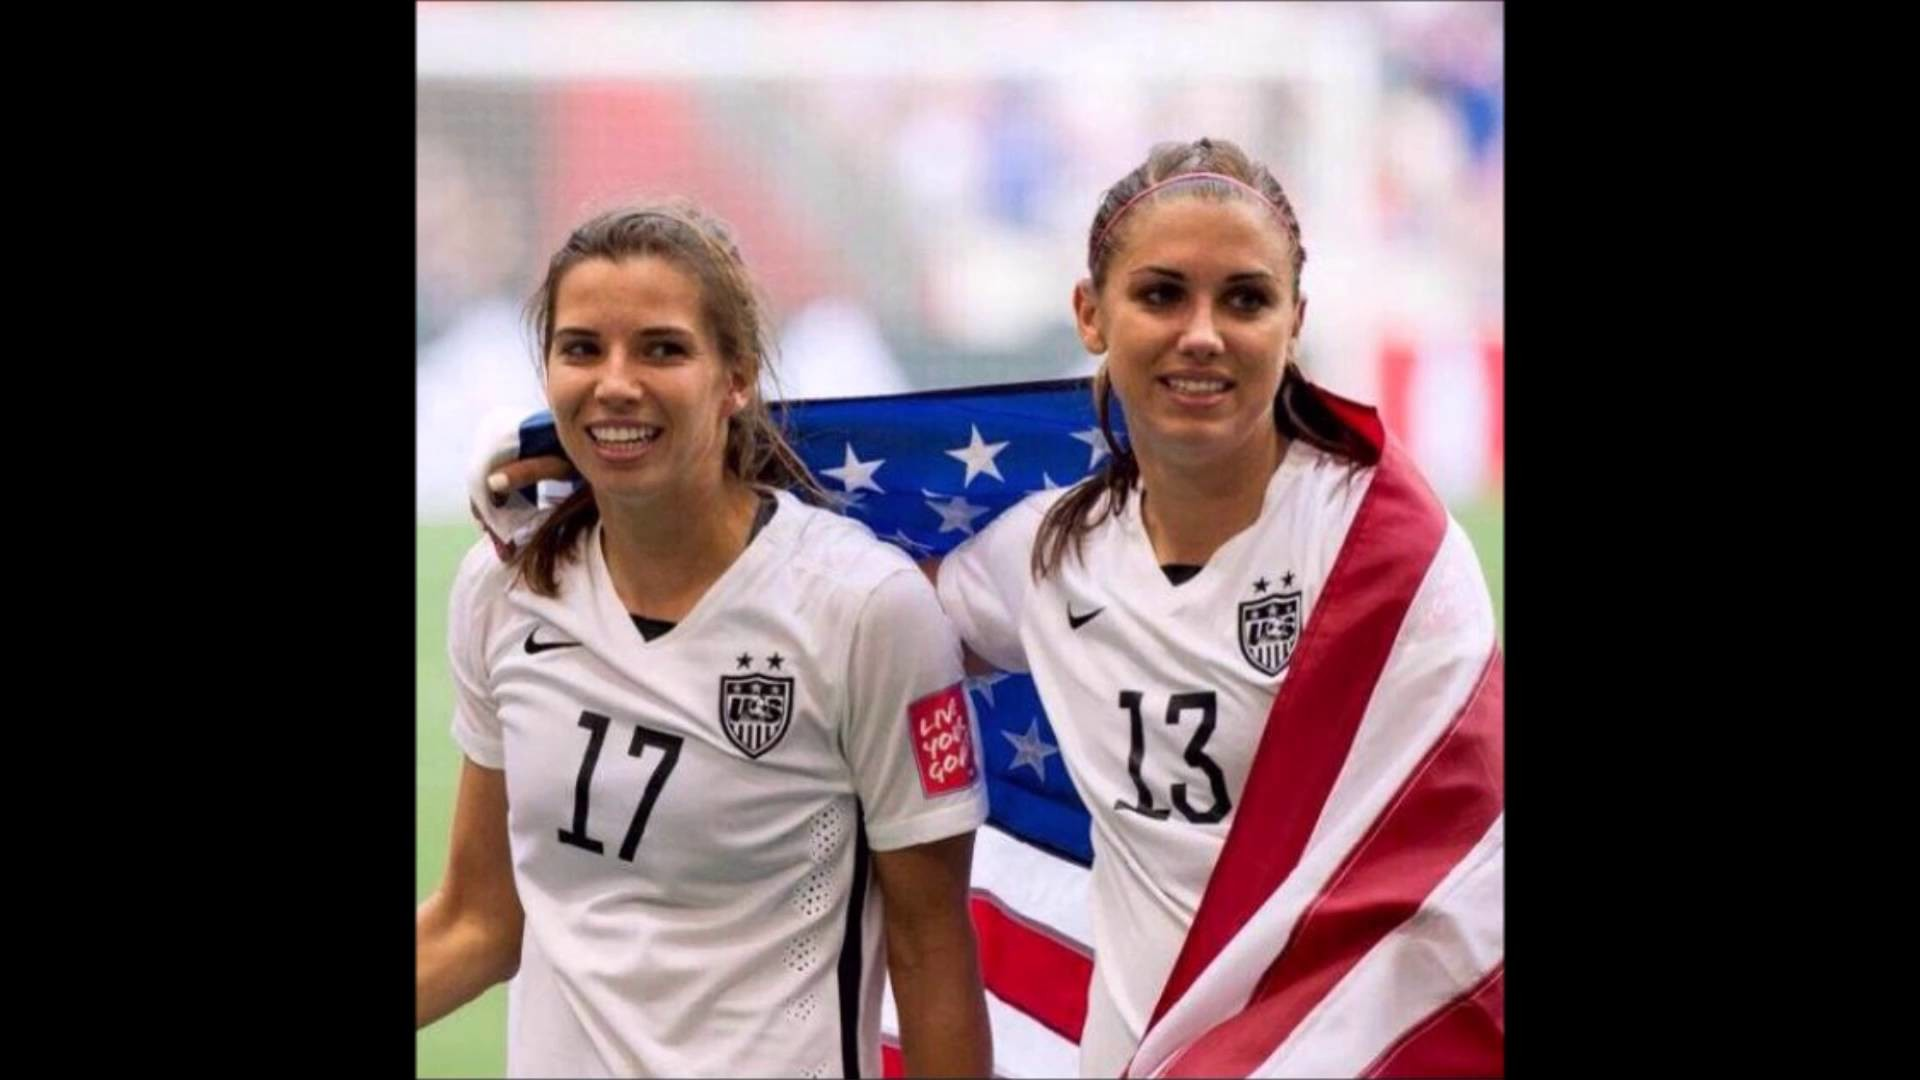 1920x1080 INOLVIDABLE Alex Morgan & Tobin Heath #Talex